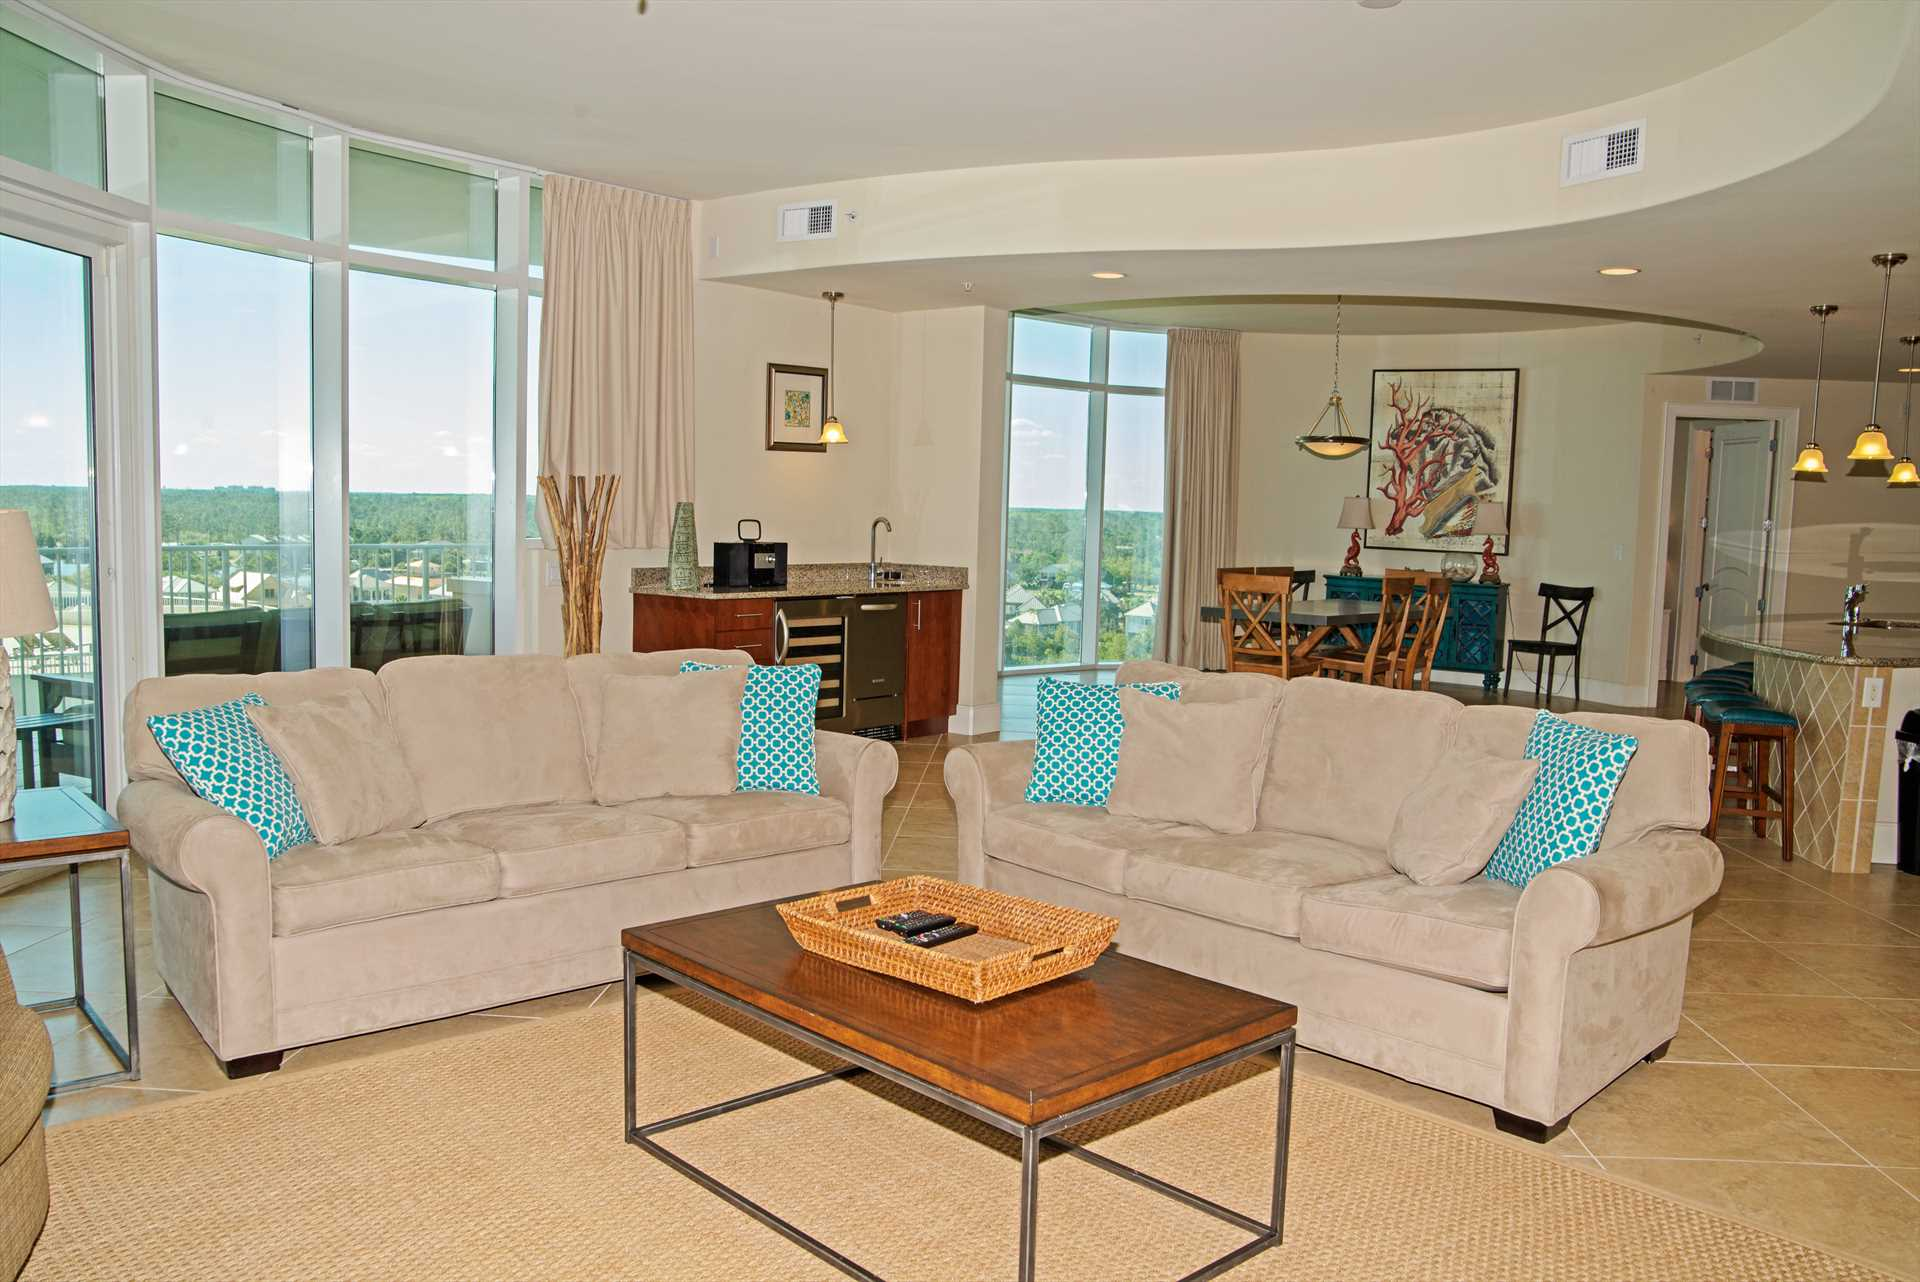 Turquoise place 709c condo 4 bedroom condos in orange beach al